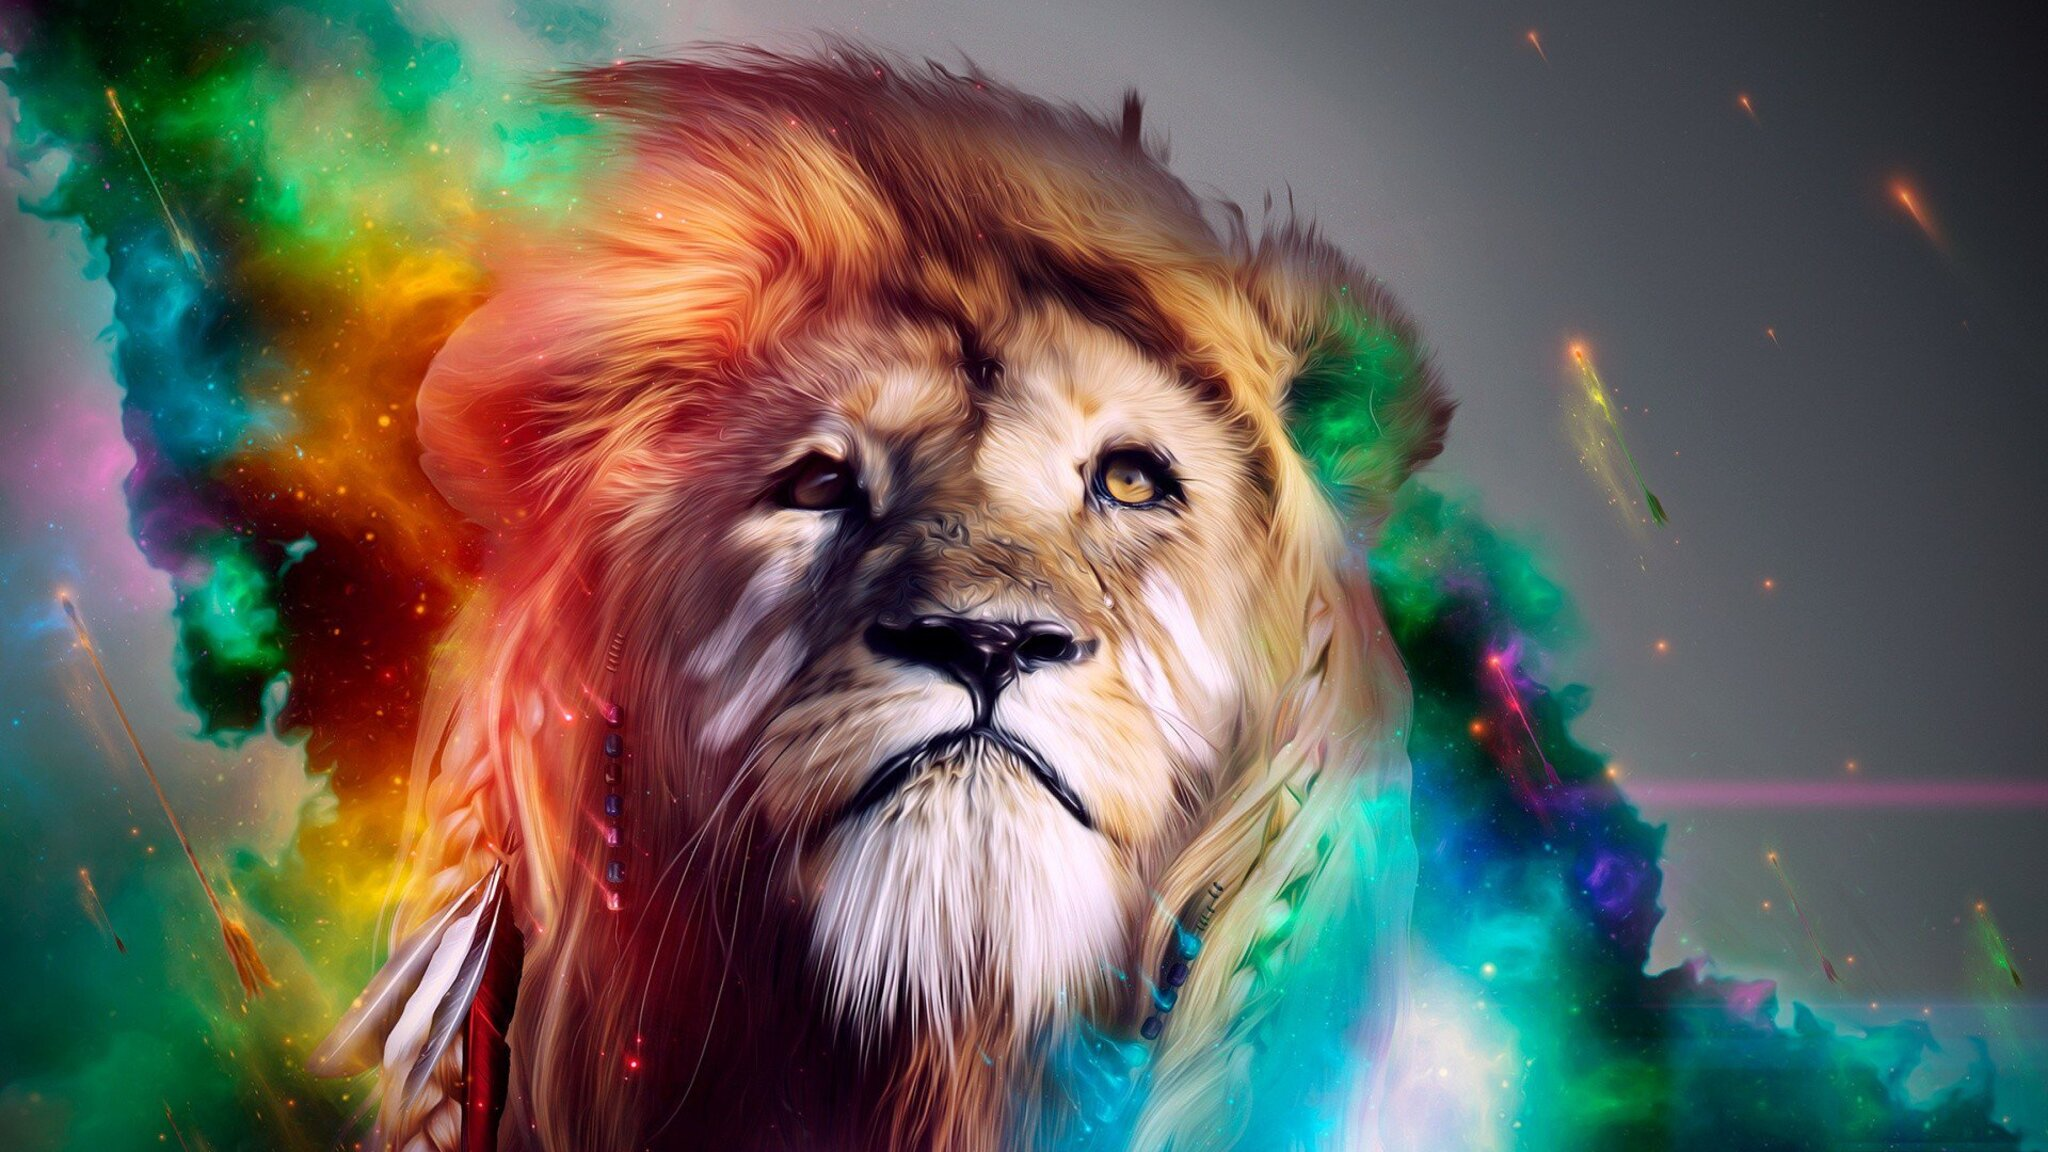 Hd 3d Neon Wallpapers 2048x1152 Lion Abstract 4k 2048x1152 Resolution Hd 4k